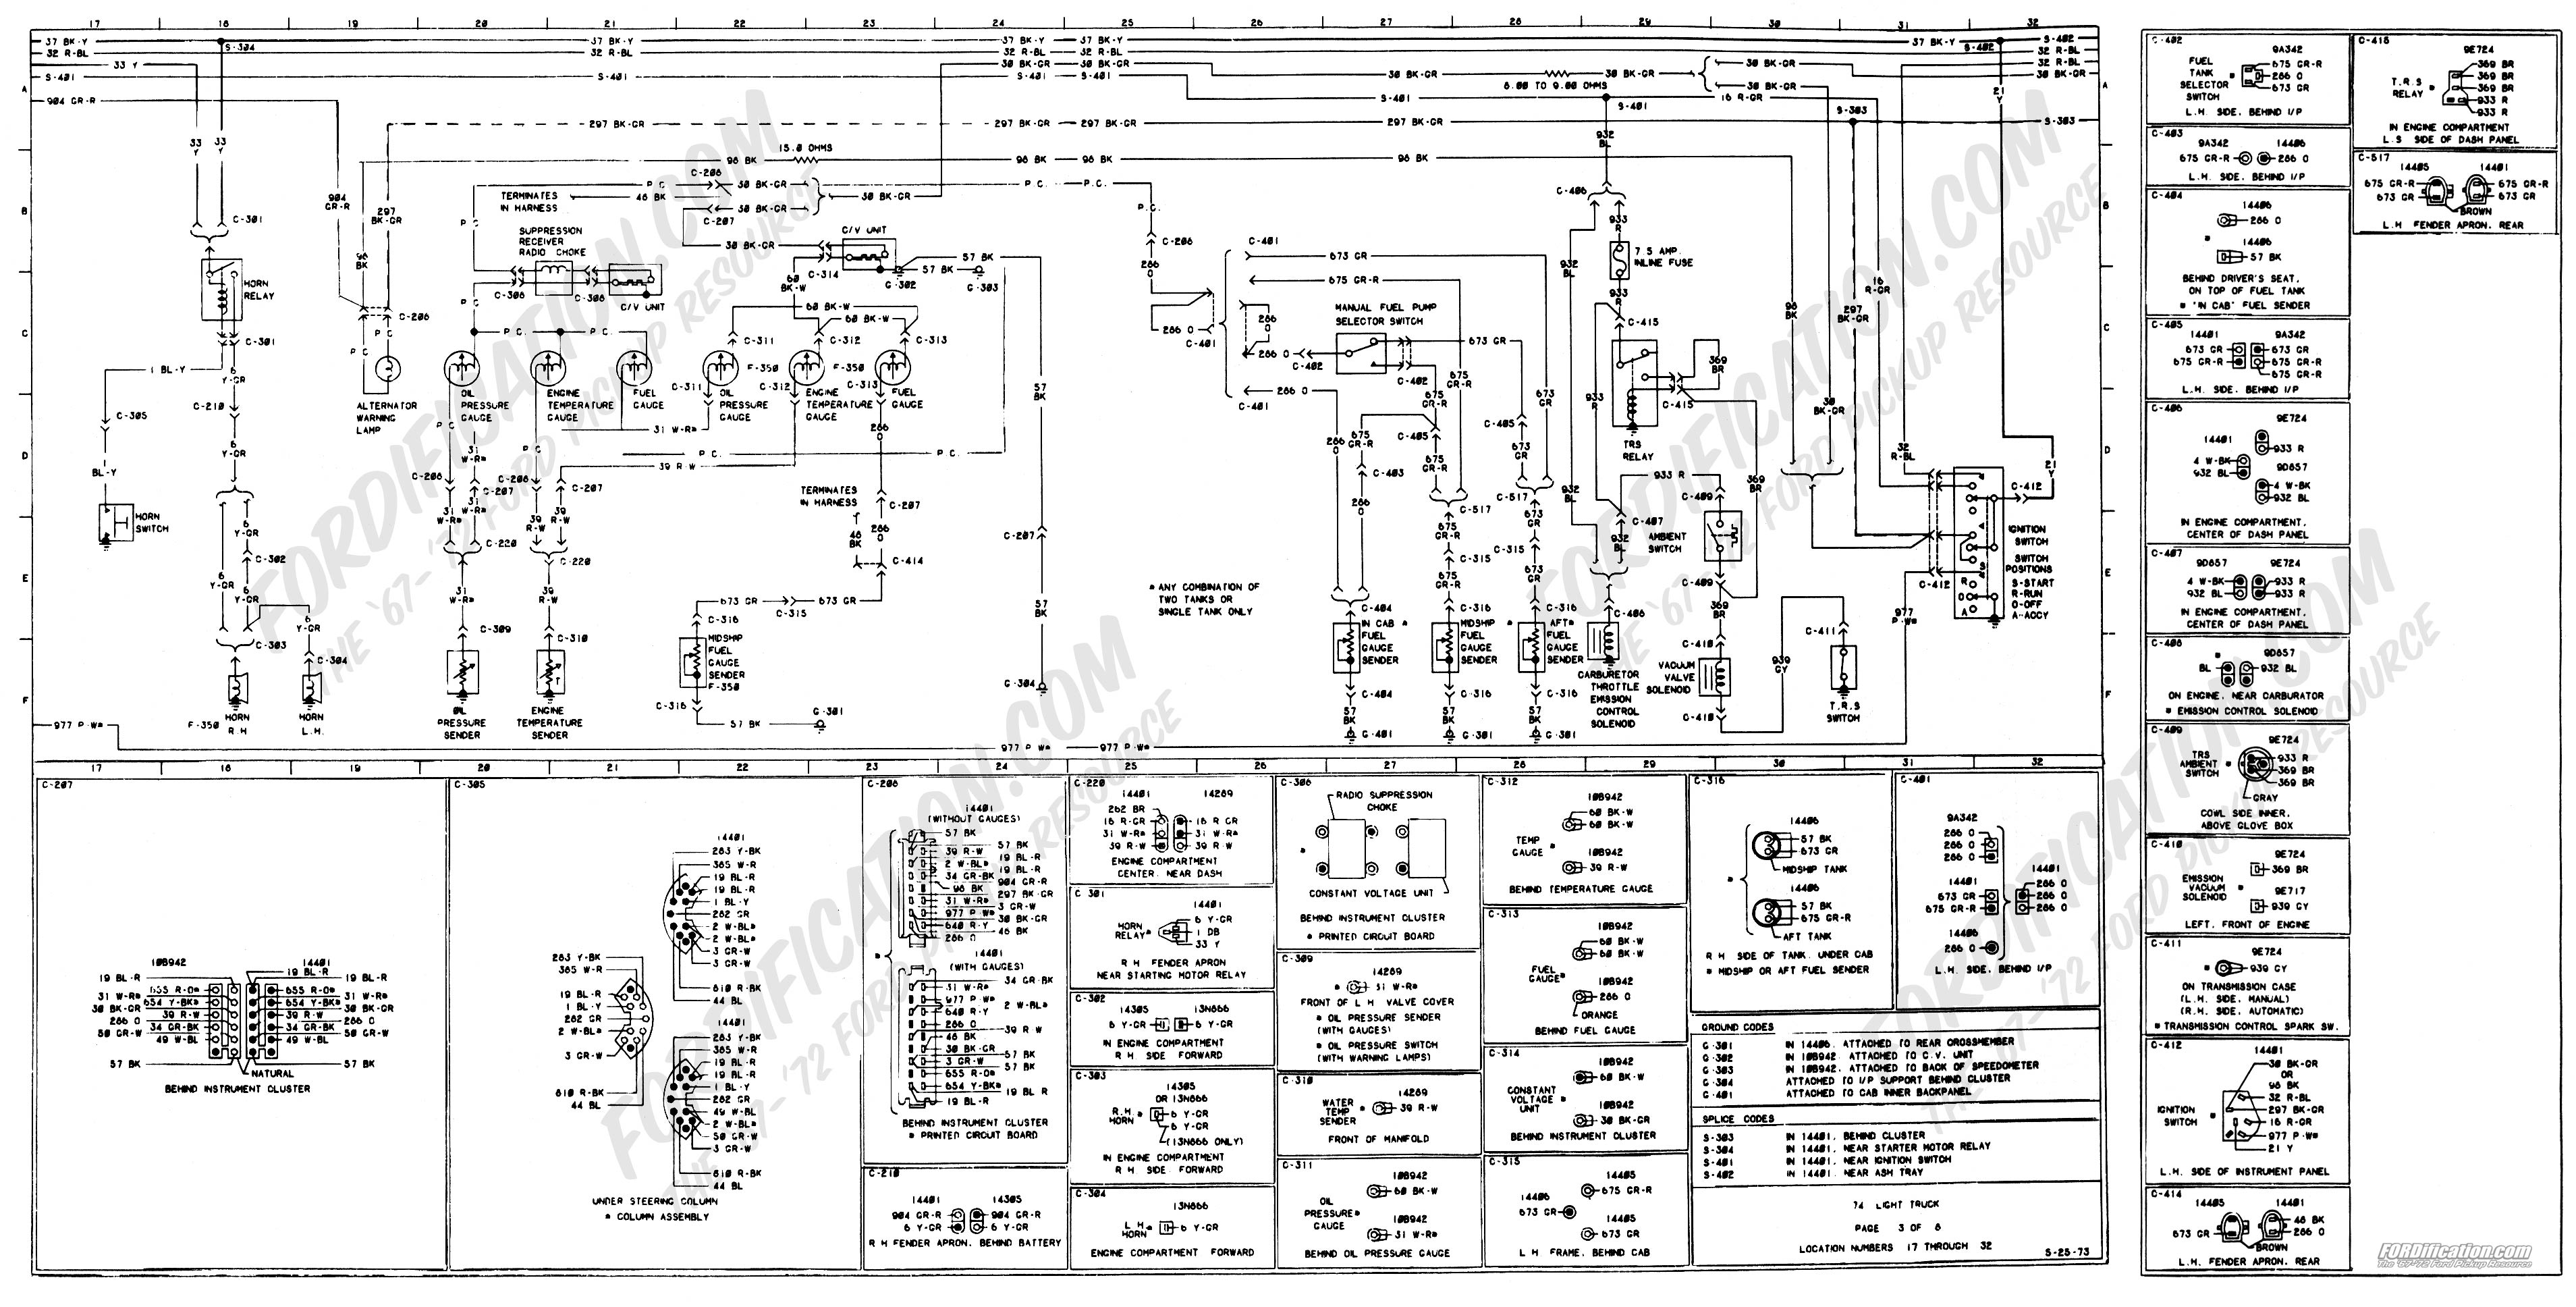 wiring_74master_3of8 1973 1979 ford truck wiring diagrams & schematics fordification net ford ltl 9000 wiring diagram at nearapp.co